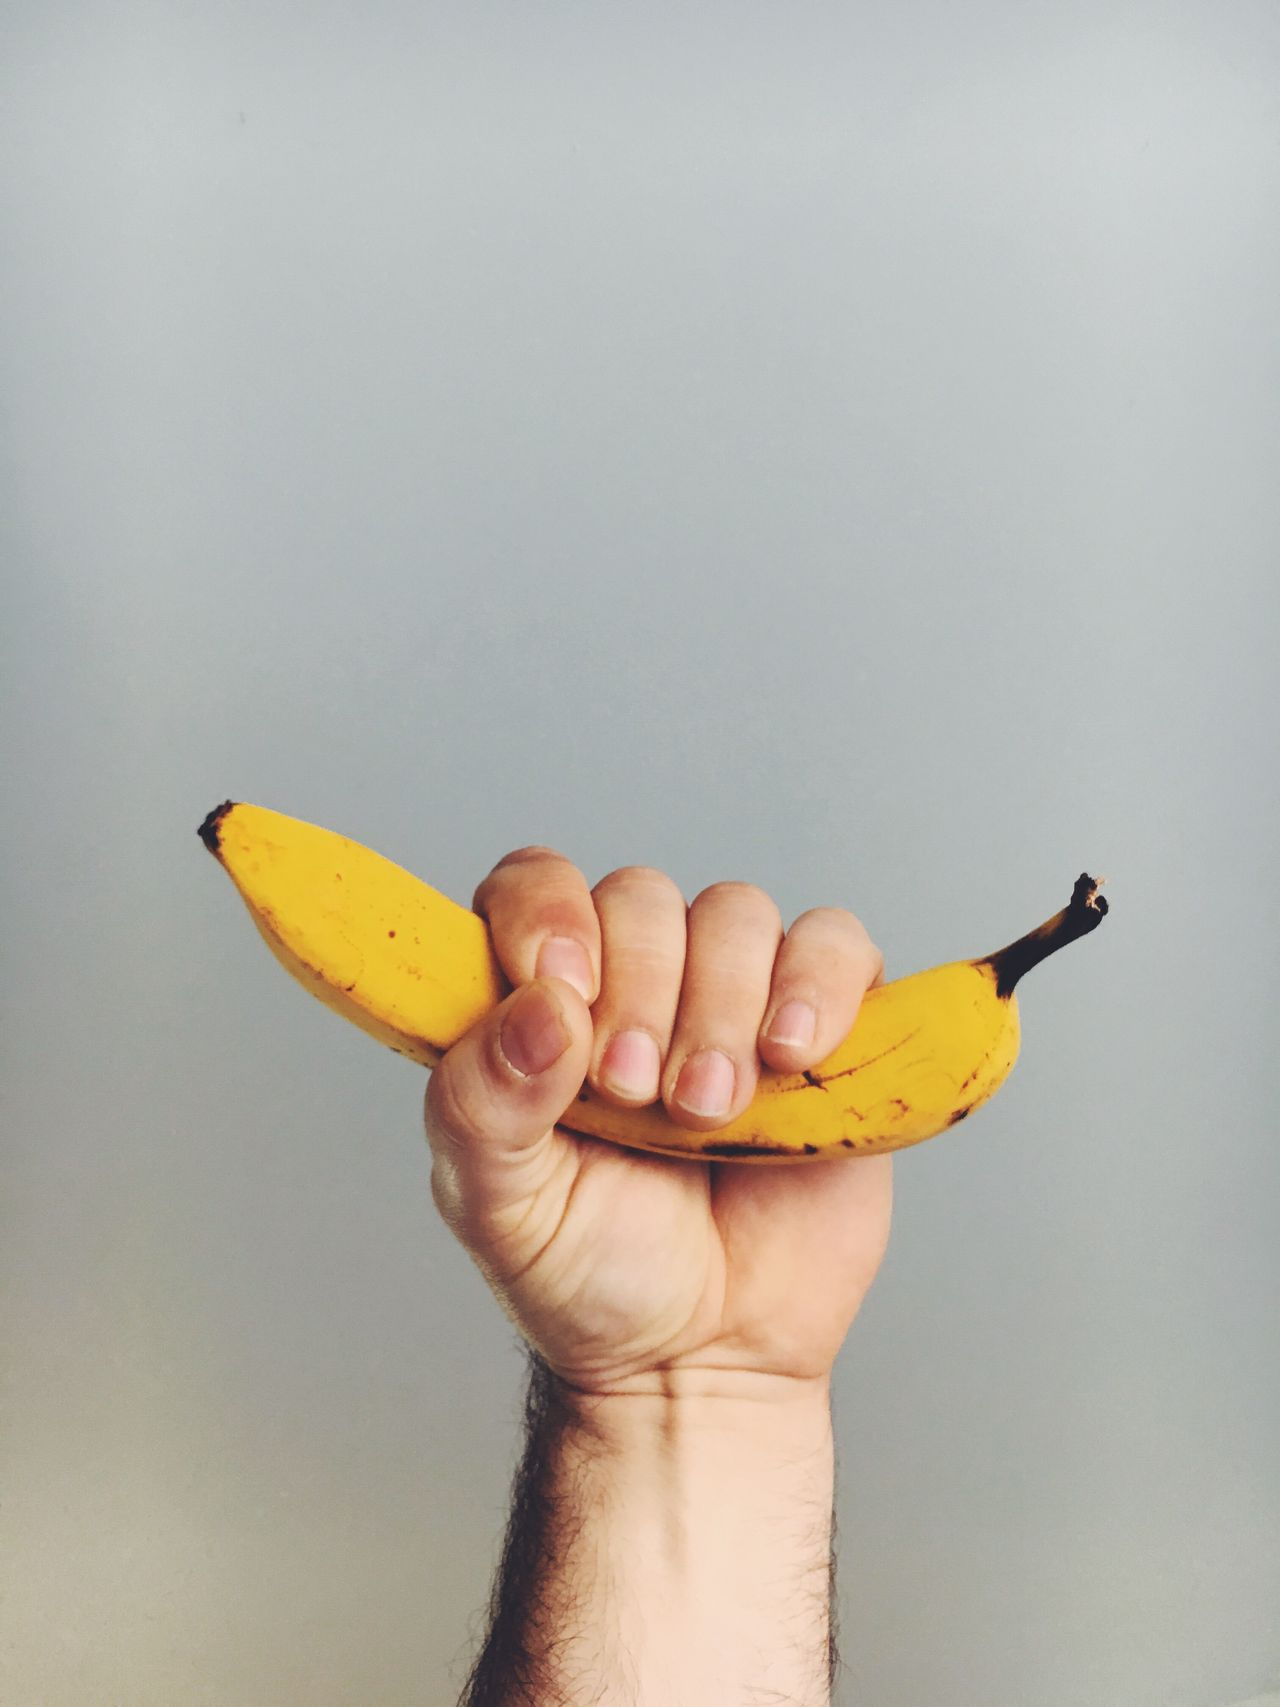 Beautiful stock photos of obst, Banana, Copy Space, Cropped, Food